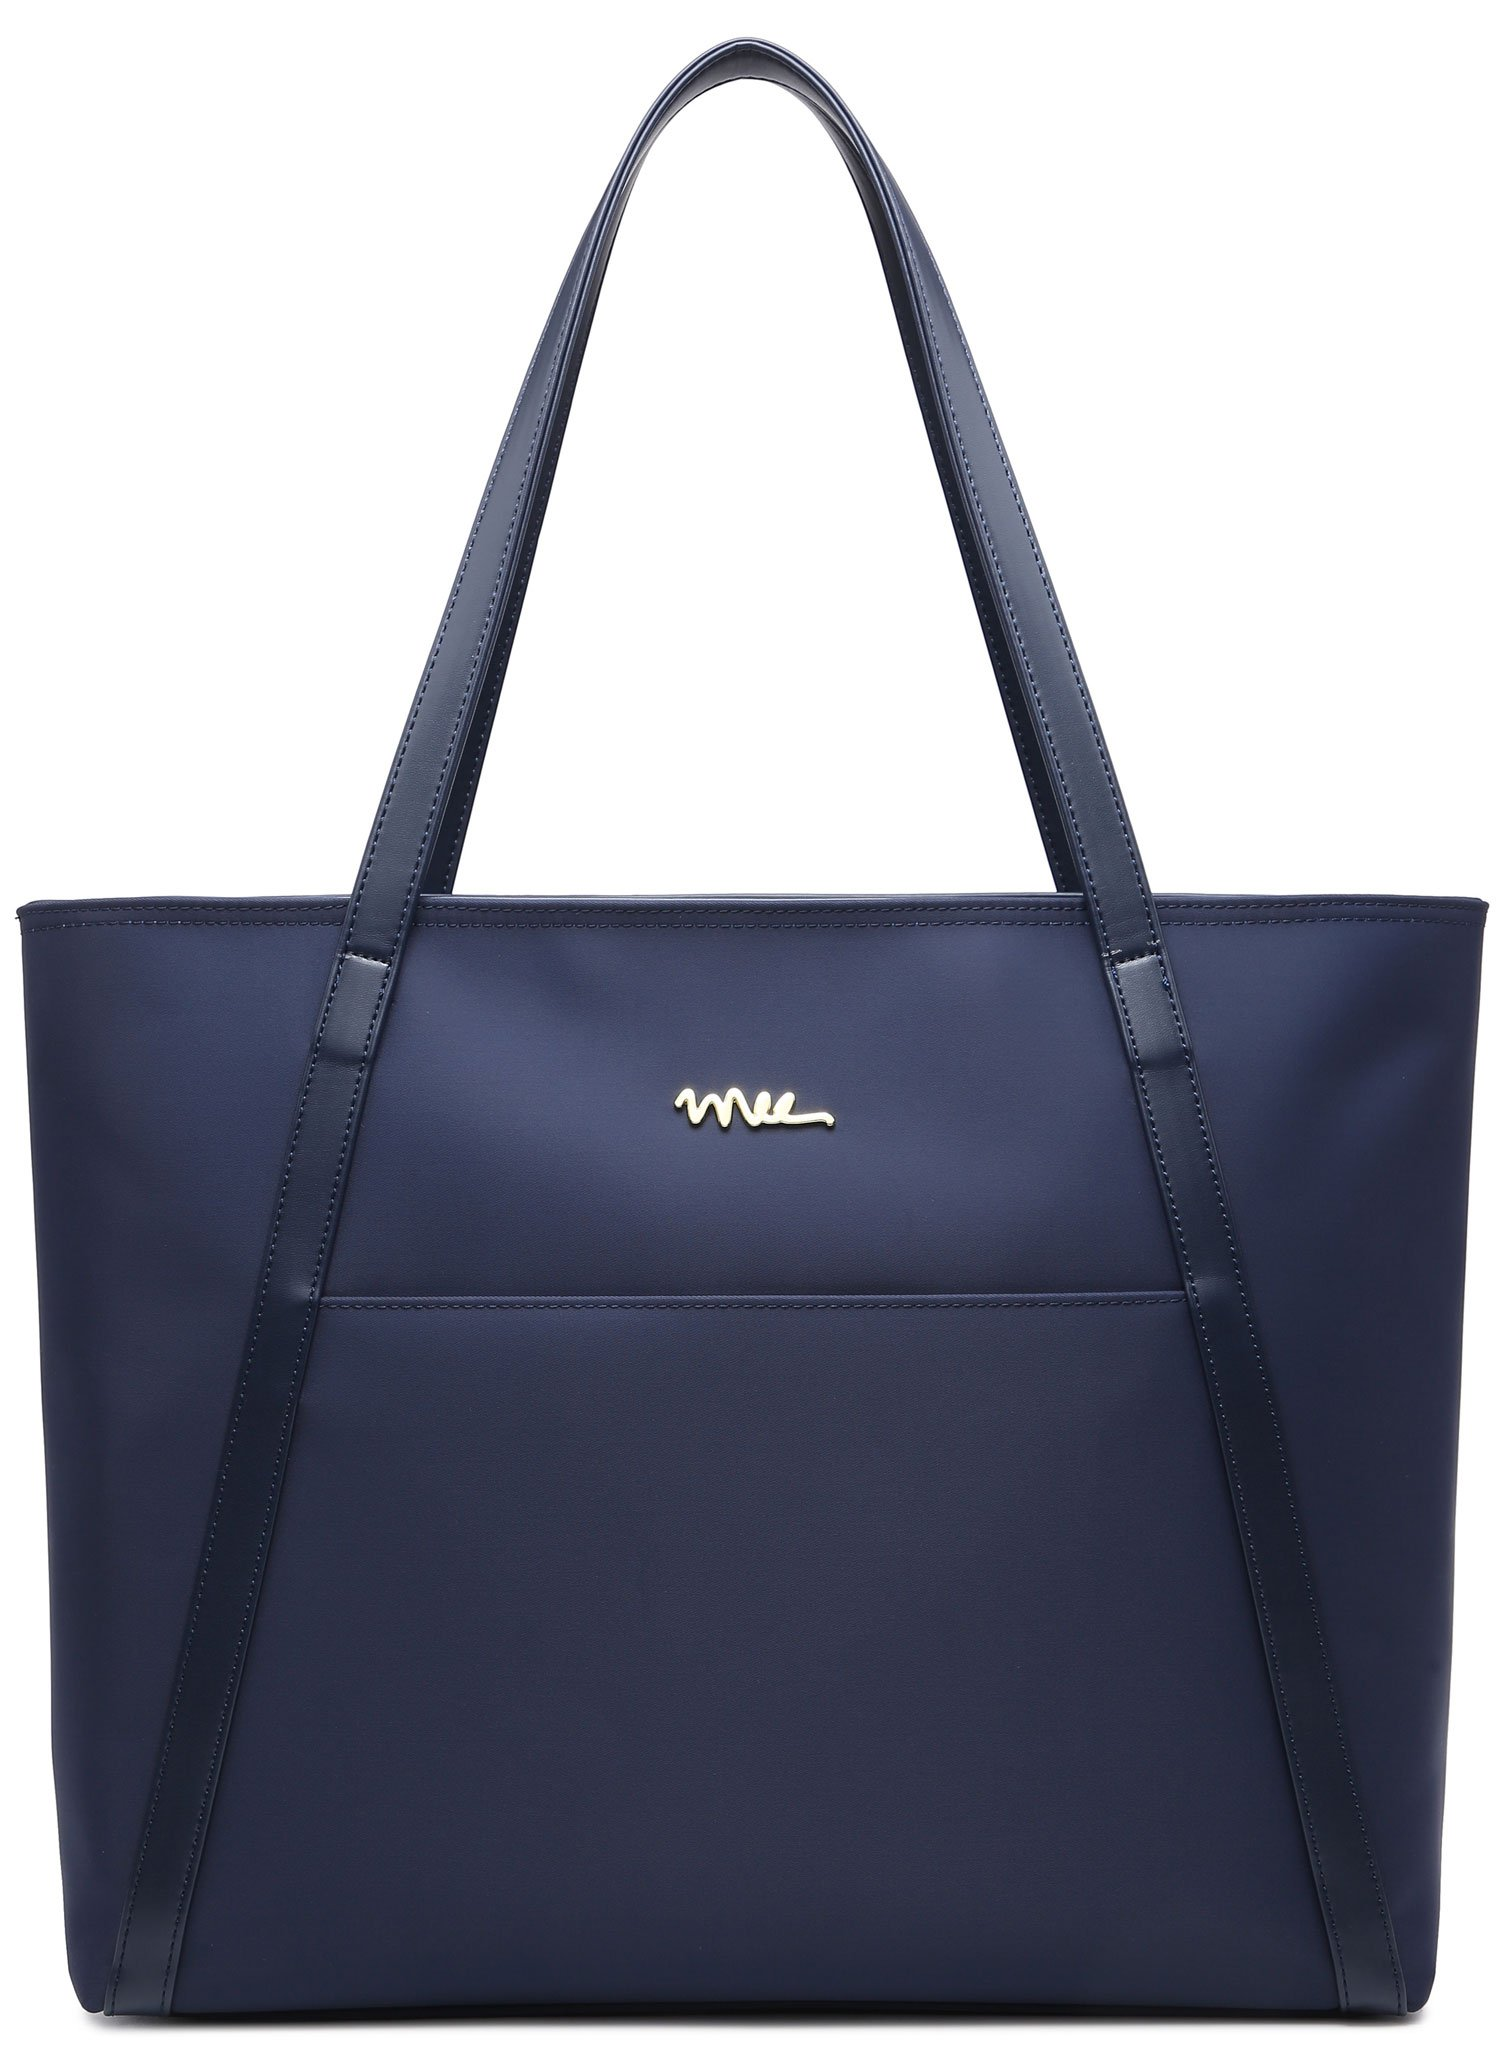 NNEE Large Water Resistance Nylon Travel Tote Shoulder Bag - Navy